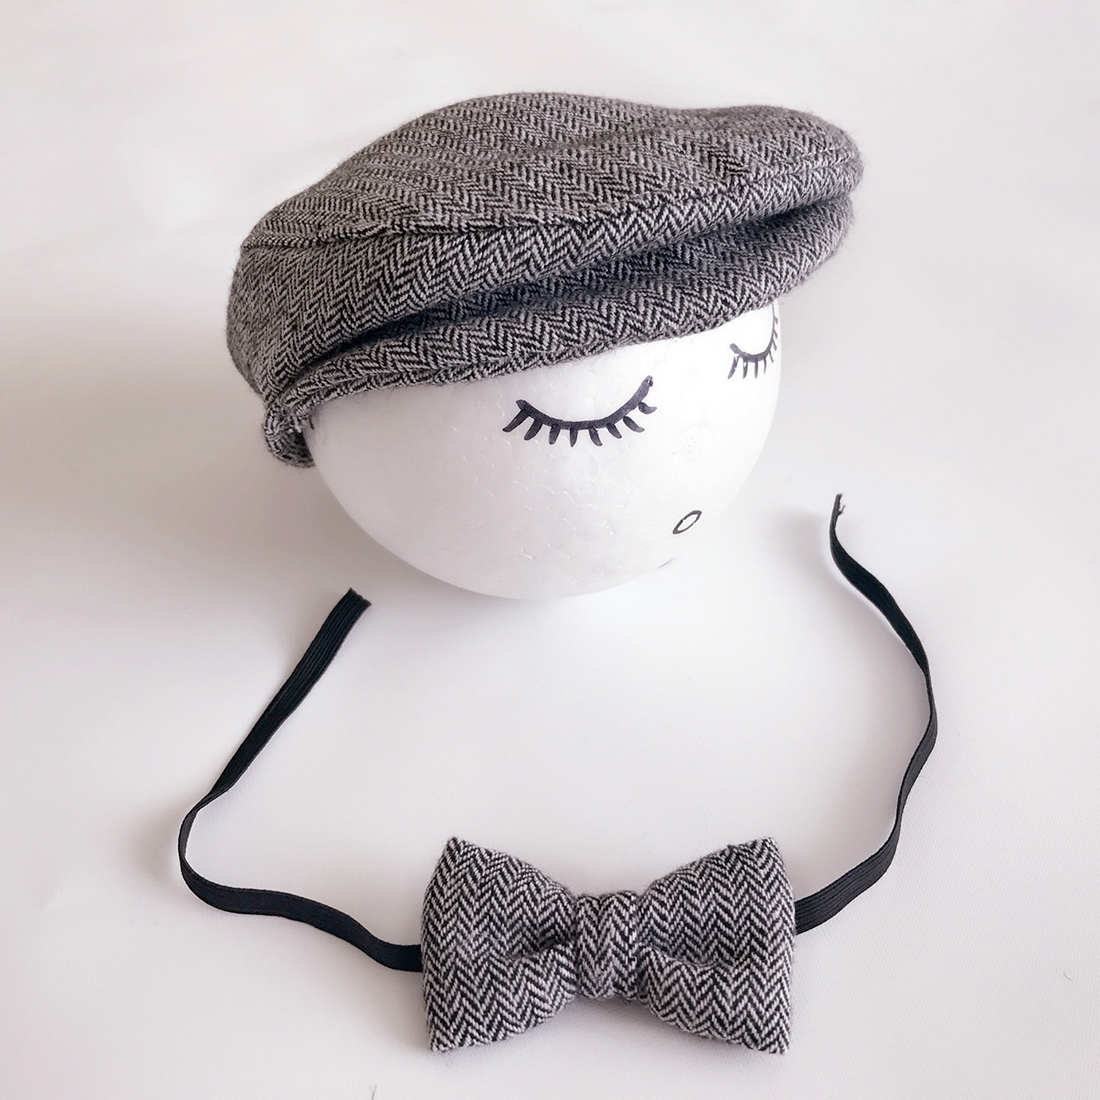 ece851fdd23 Newborn Baby Photography Props Photo Shoot Outfits Infant Cap Cabbie Hat  with Bowtie Set Black White. ALA0000BH 1.jpg  ALA0000BH.jpg ...